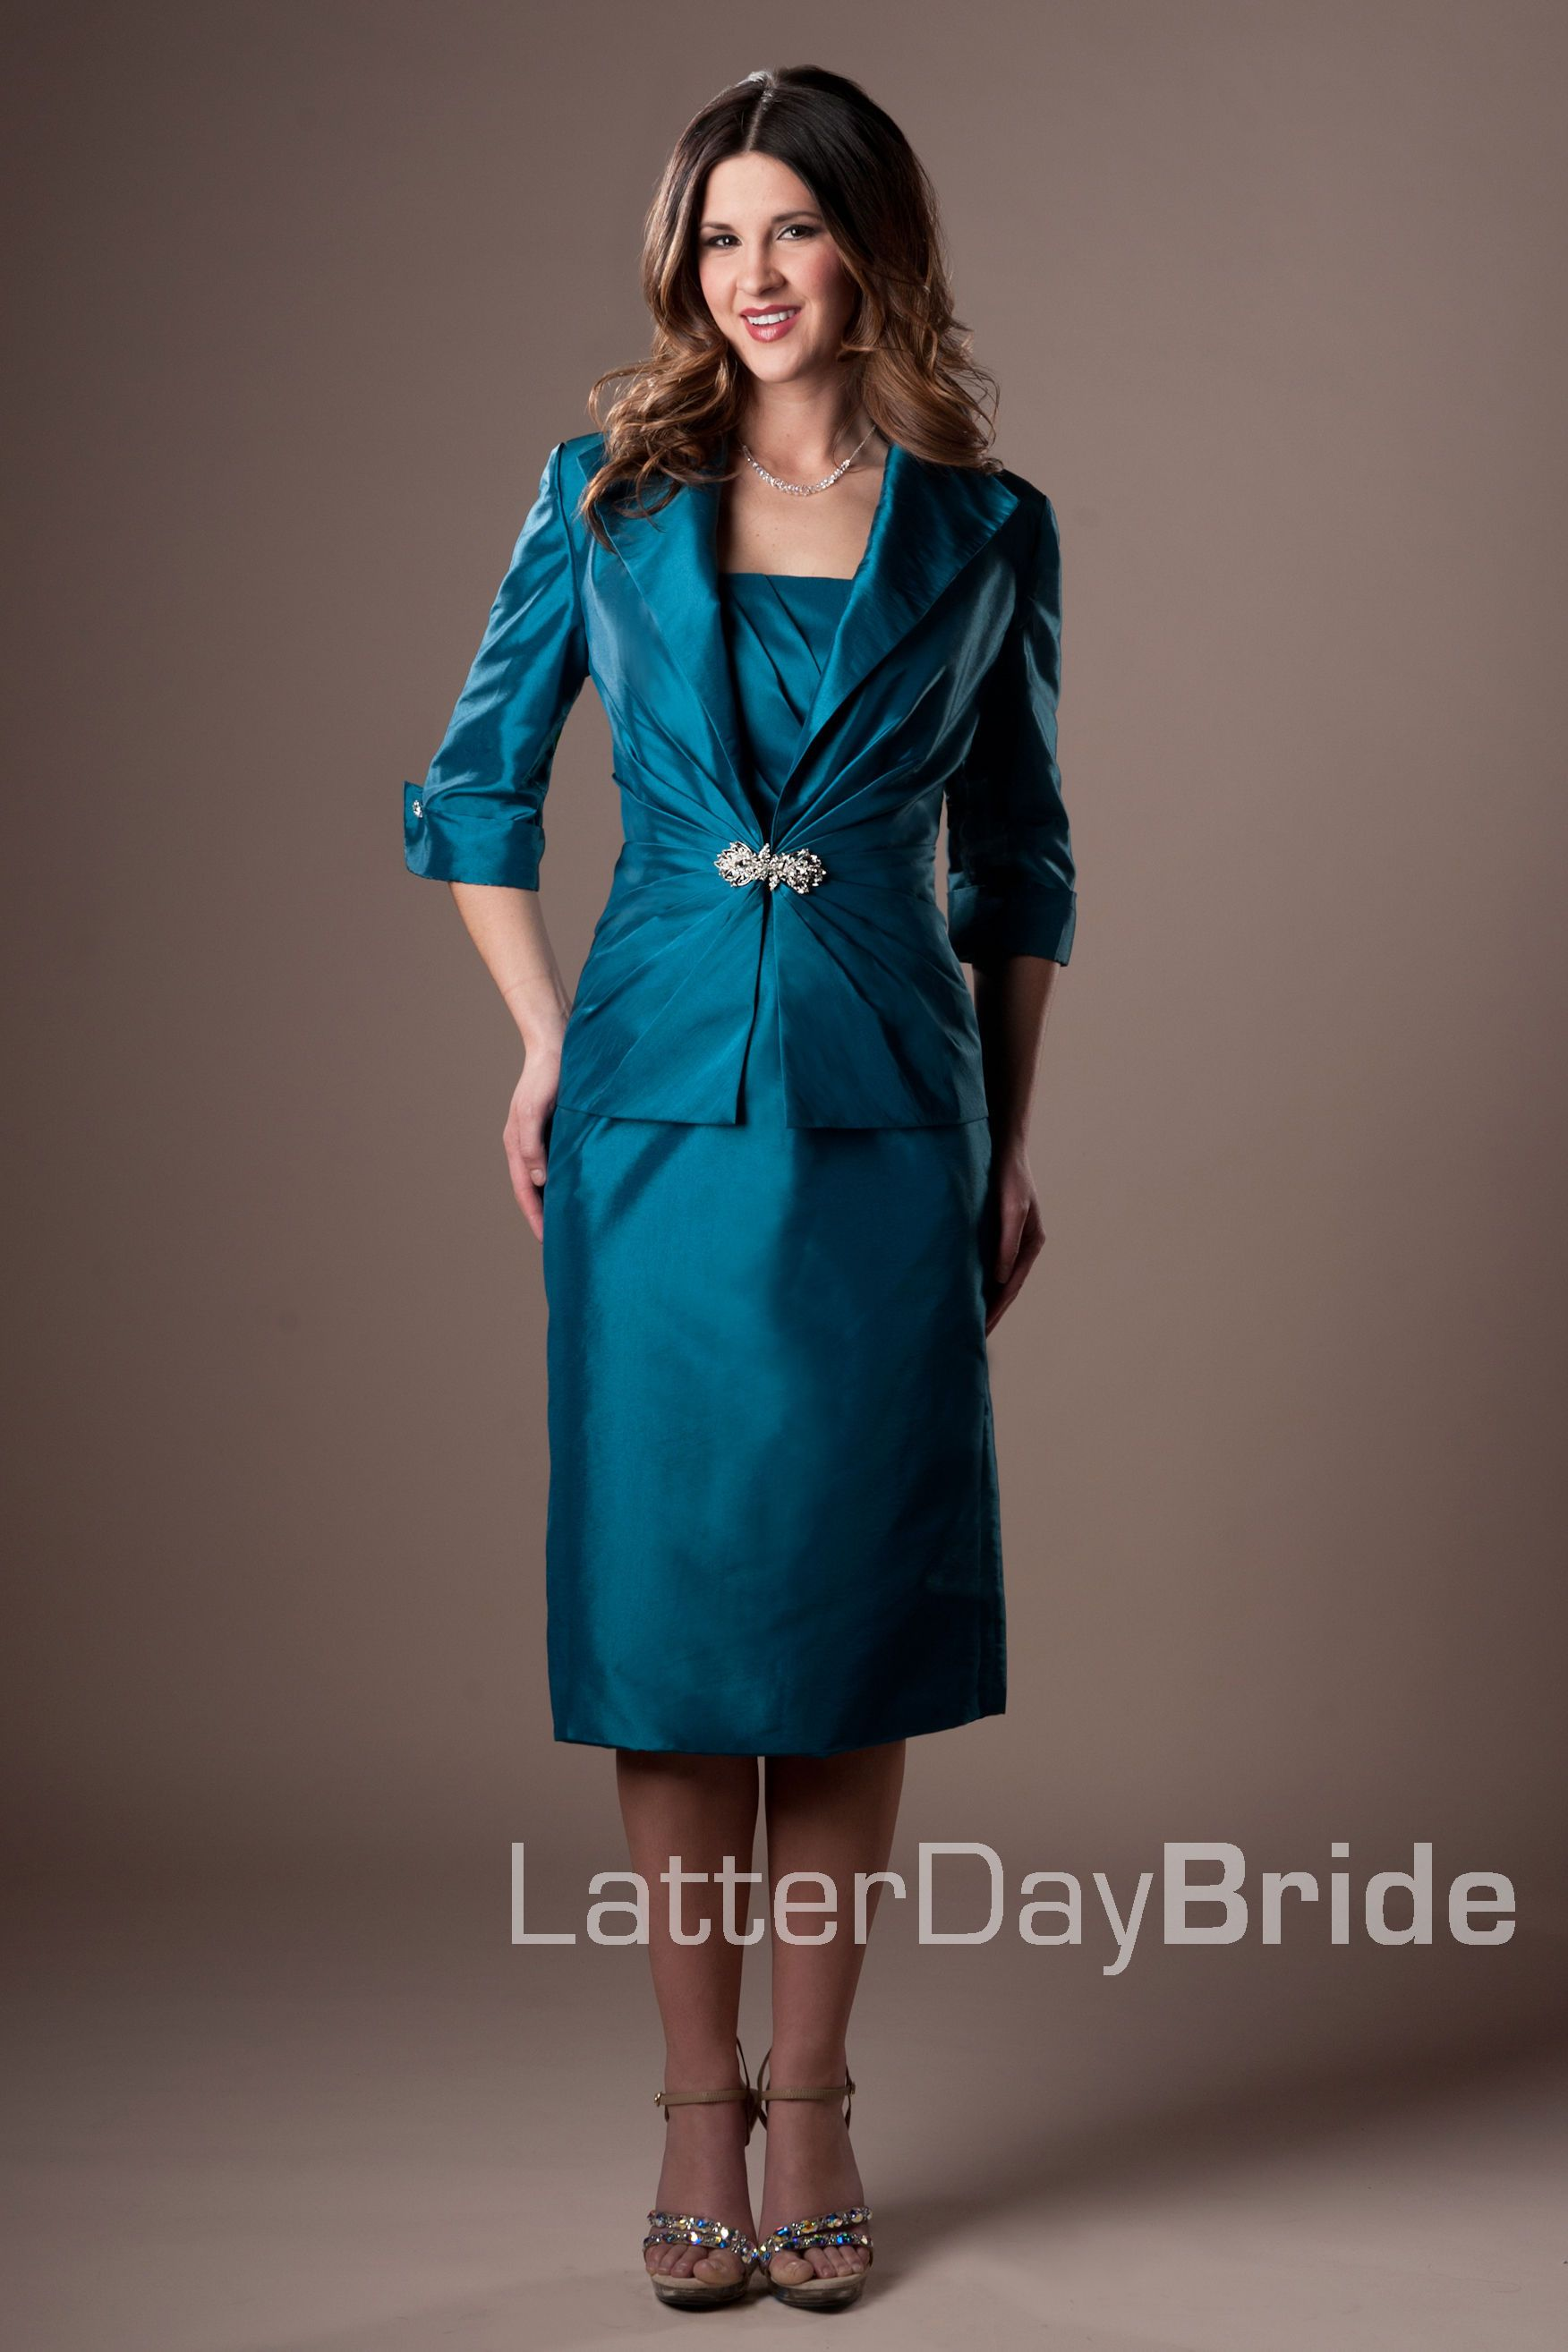 2dd1b41d68a19 Mother of the Bride Dresses, Judith | LatterDayBride & Prom -Modest Mormon  LDS Mother of the Bride Dress